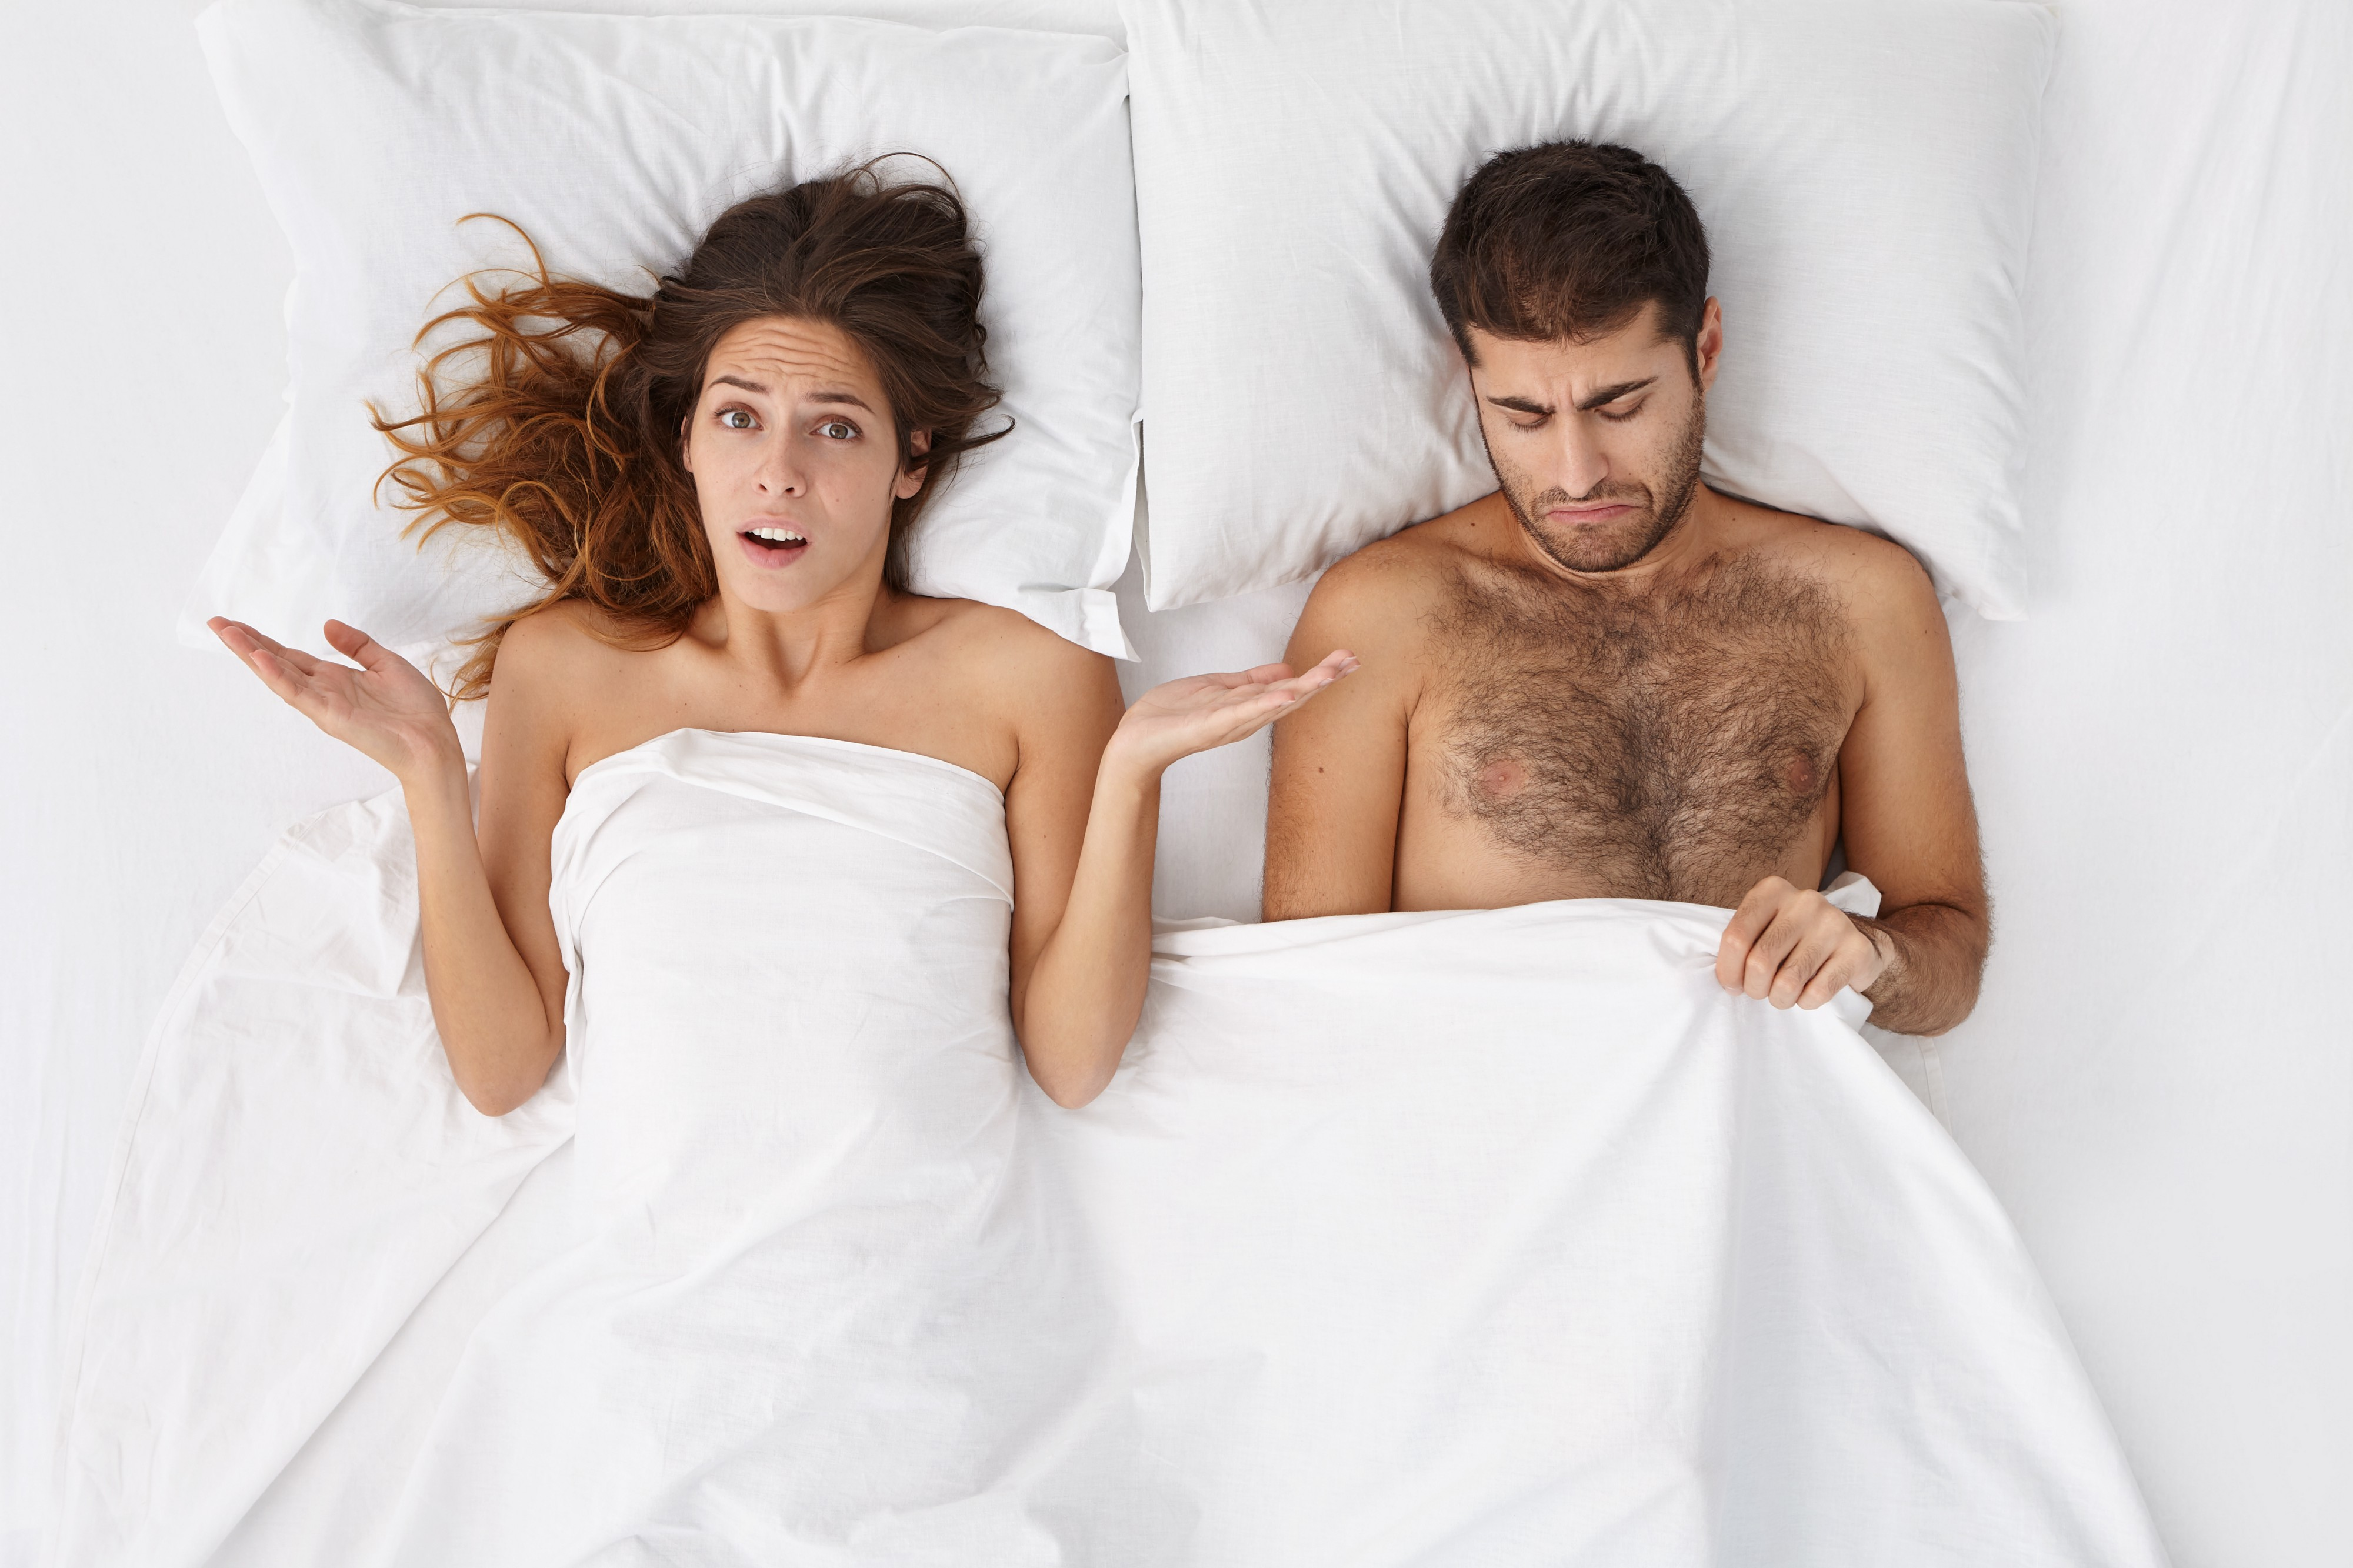 I Married A Man With Phimosis Love Emma Medium